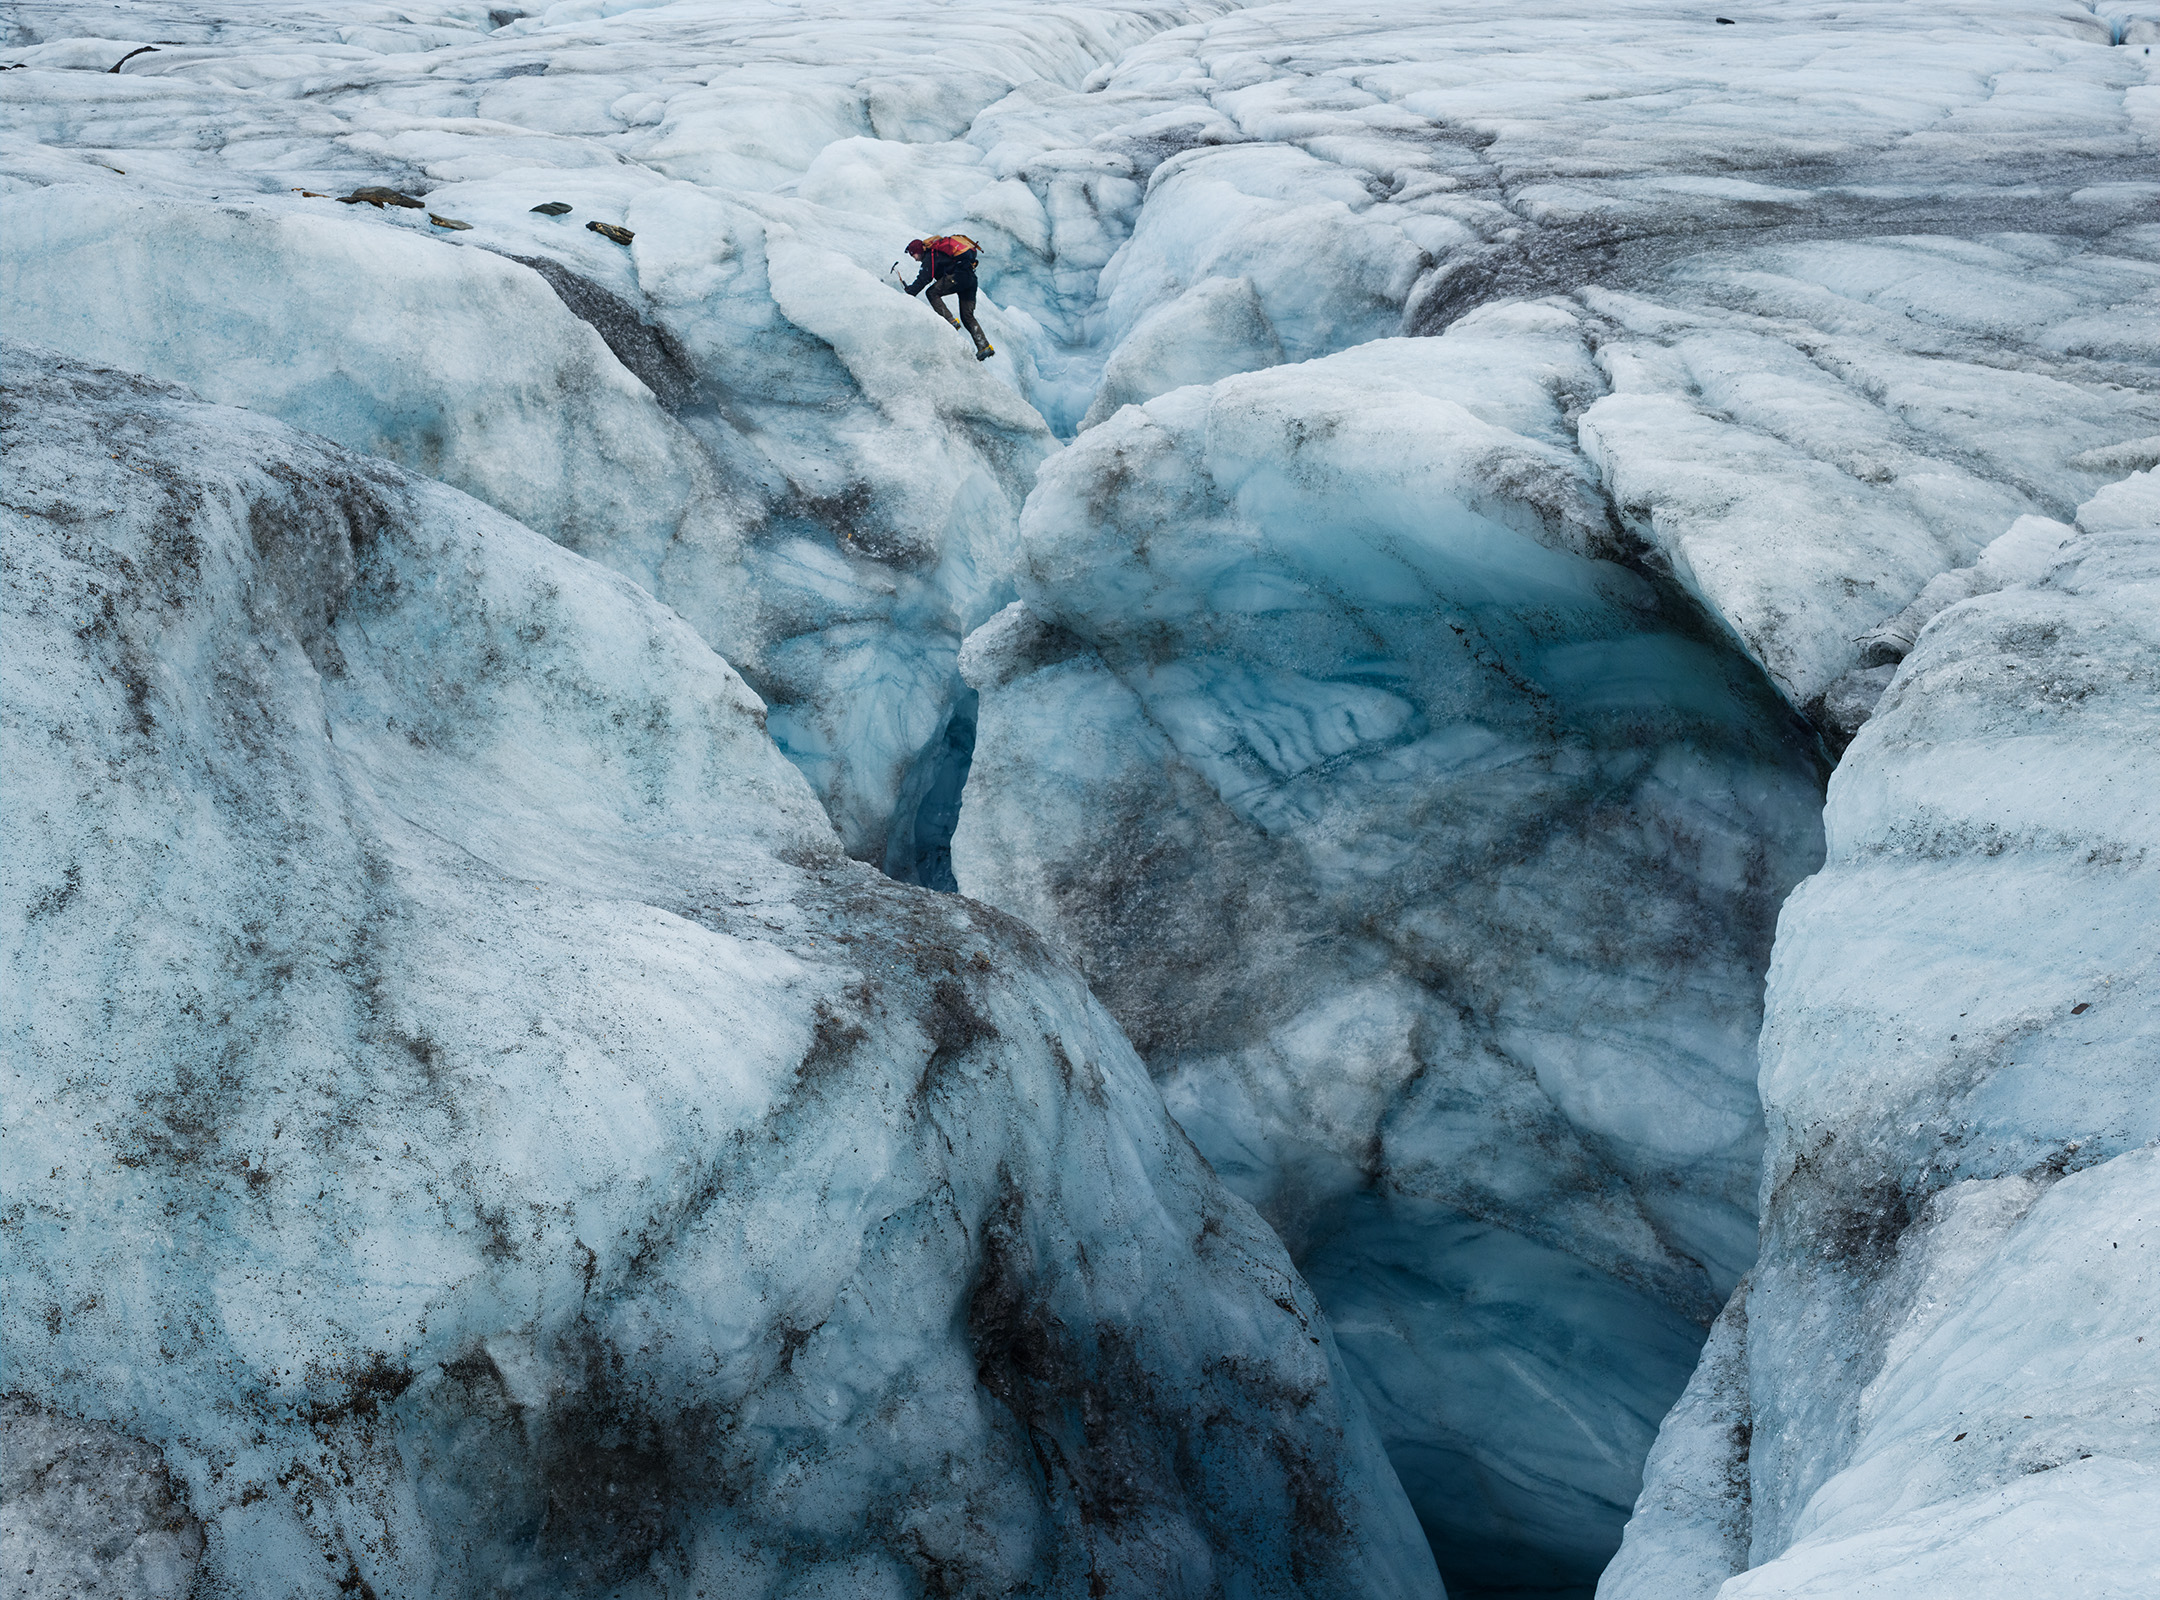 svalbard, glacier, iceberg, project pressure, ice, climate, change, corey arnold, coreyfishes, hornsund, norge, norway, photography, exhibition, crevasse, climber, climbing, hansbreen